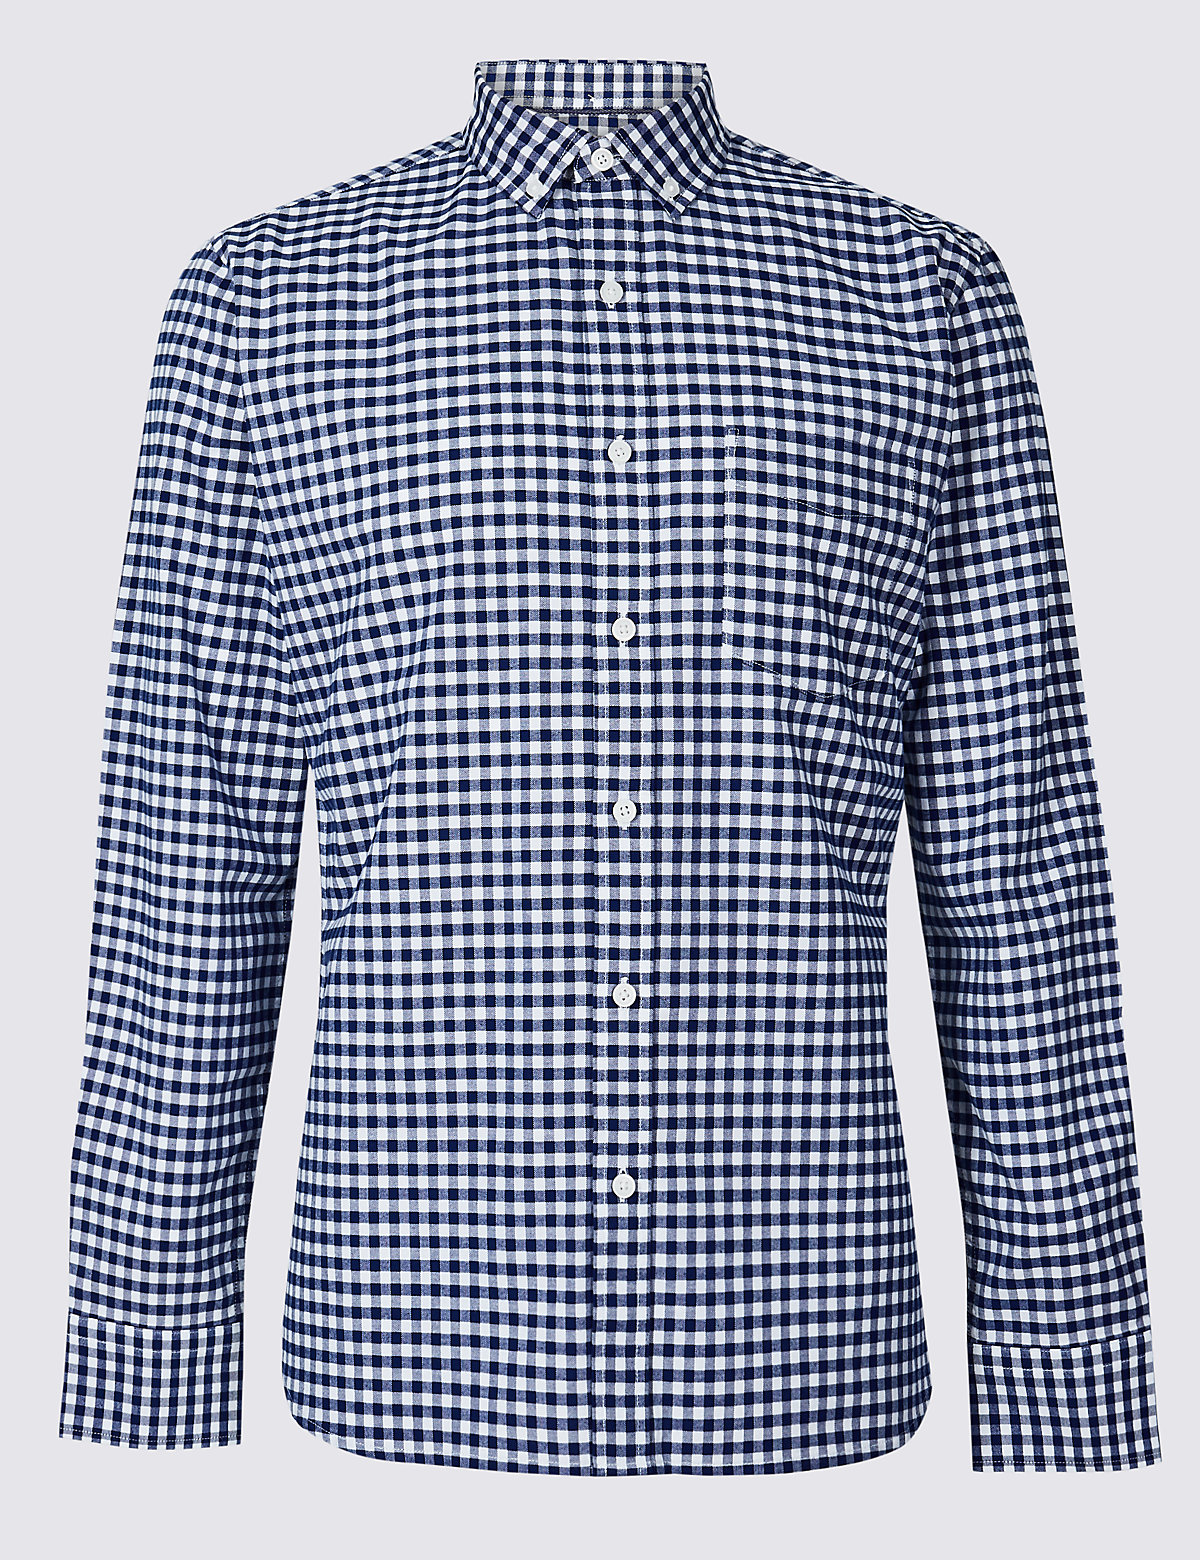 Marks & Spencer Navy Pure Cotton Slim Fit Checked Oxford Shirt